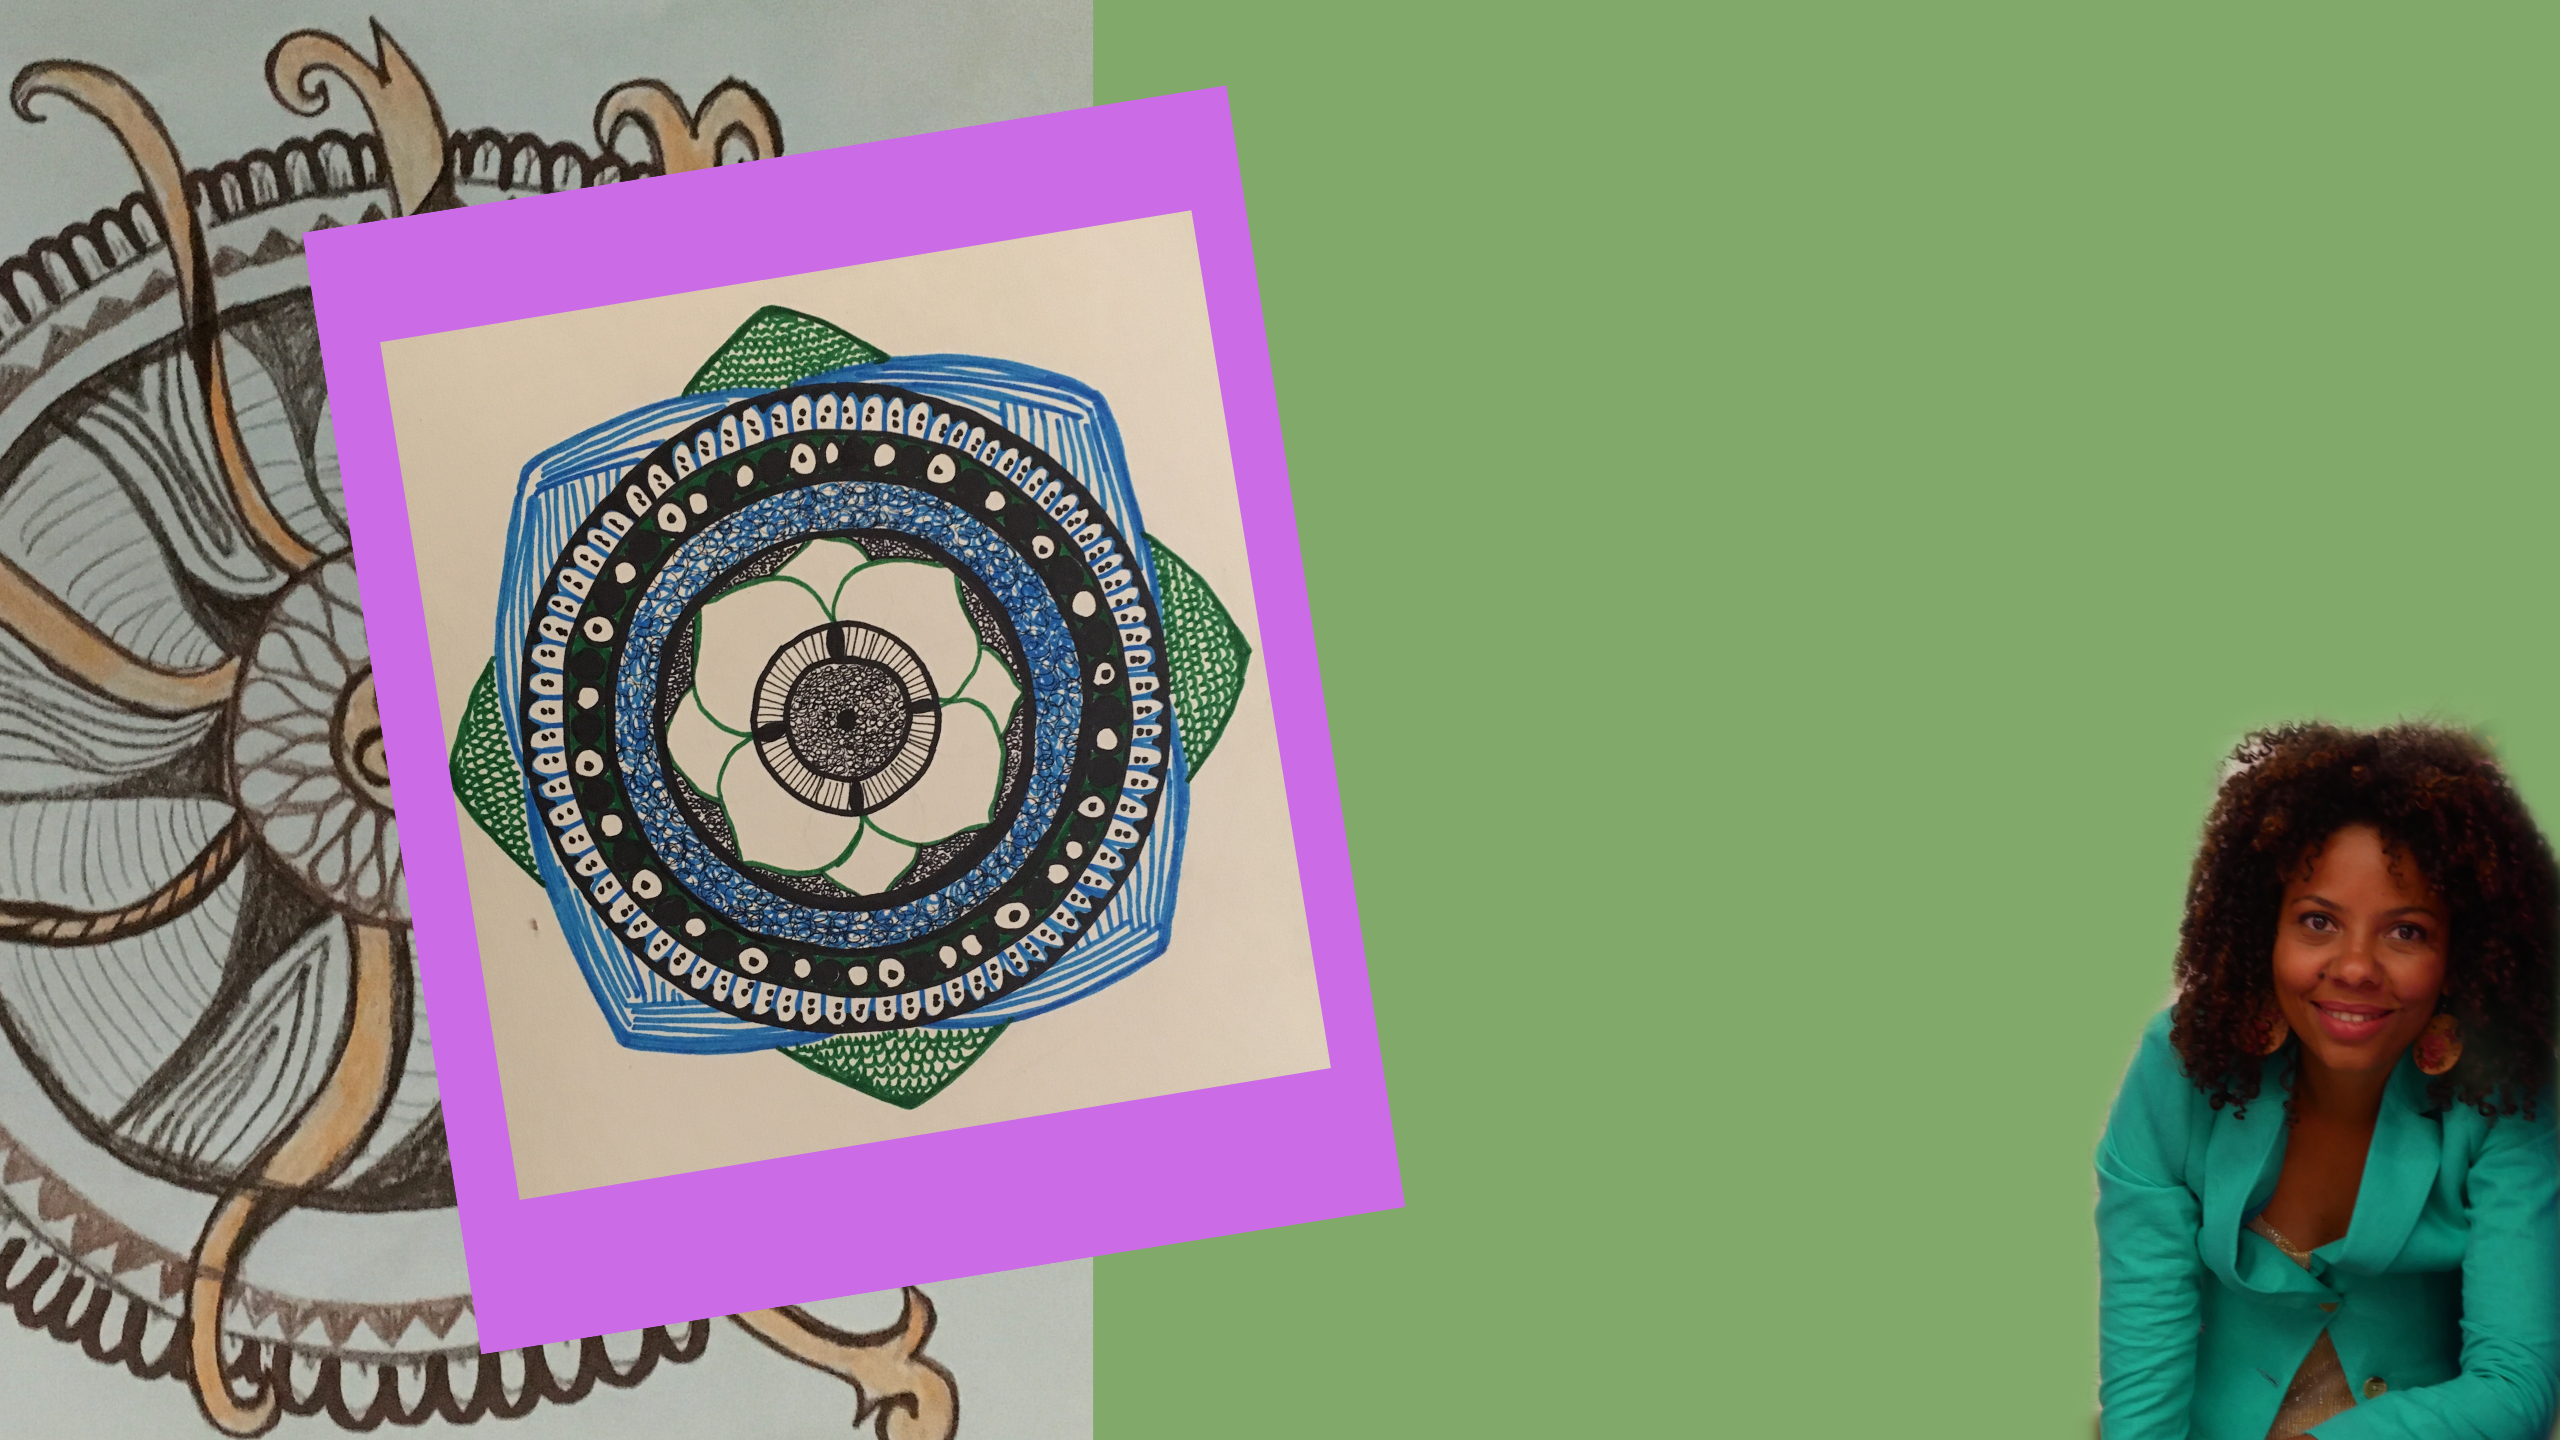 Mindfulness based Art Course: The Mindfulness Mandala Drawing Course